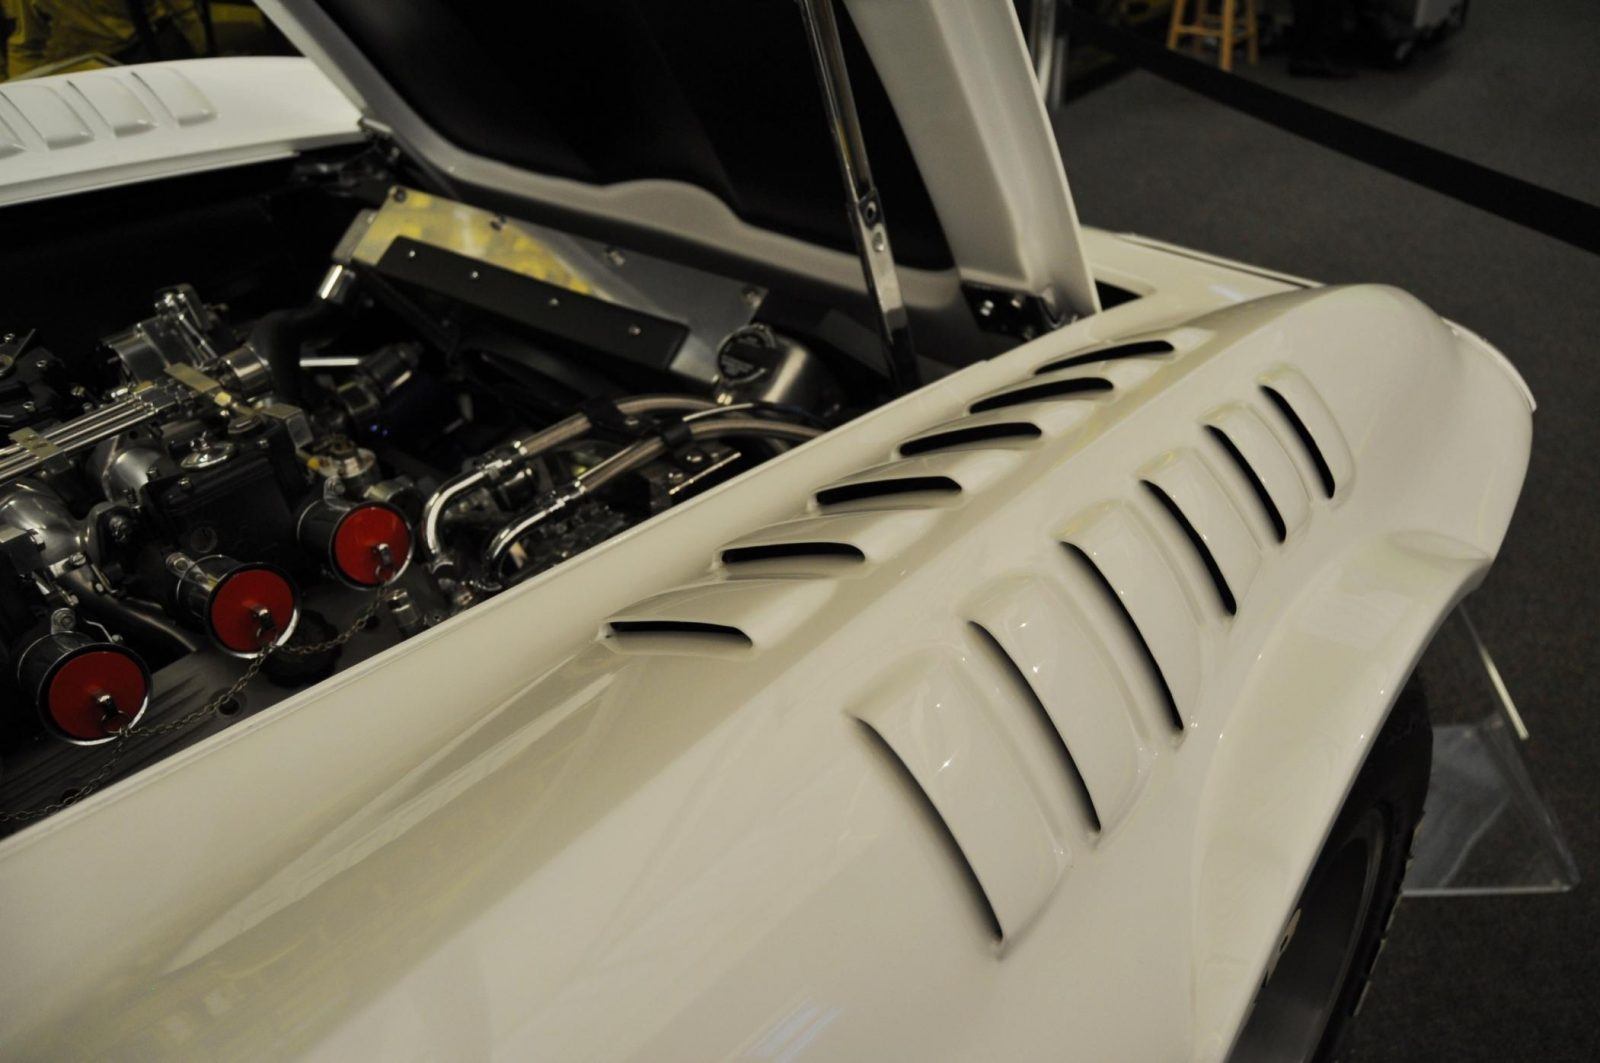 1963 Corvette GS Chaparral by Dick Coup at National Corvette Museum 6